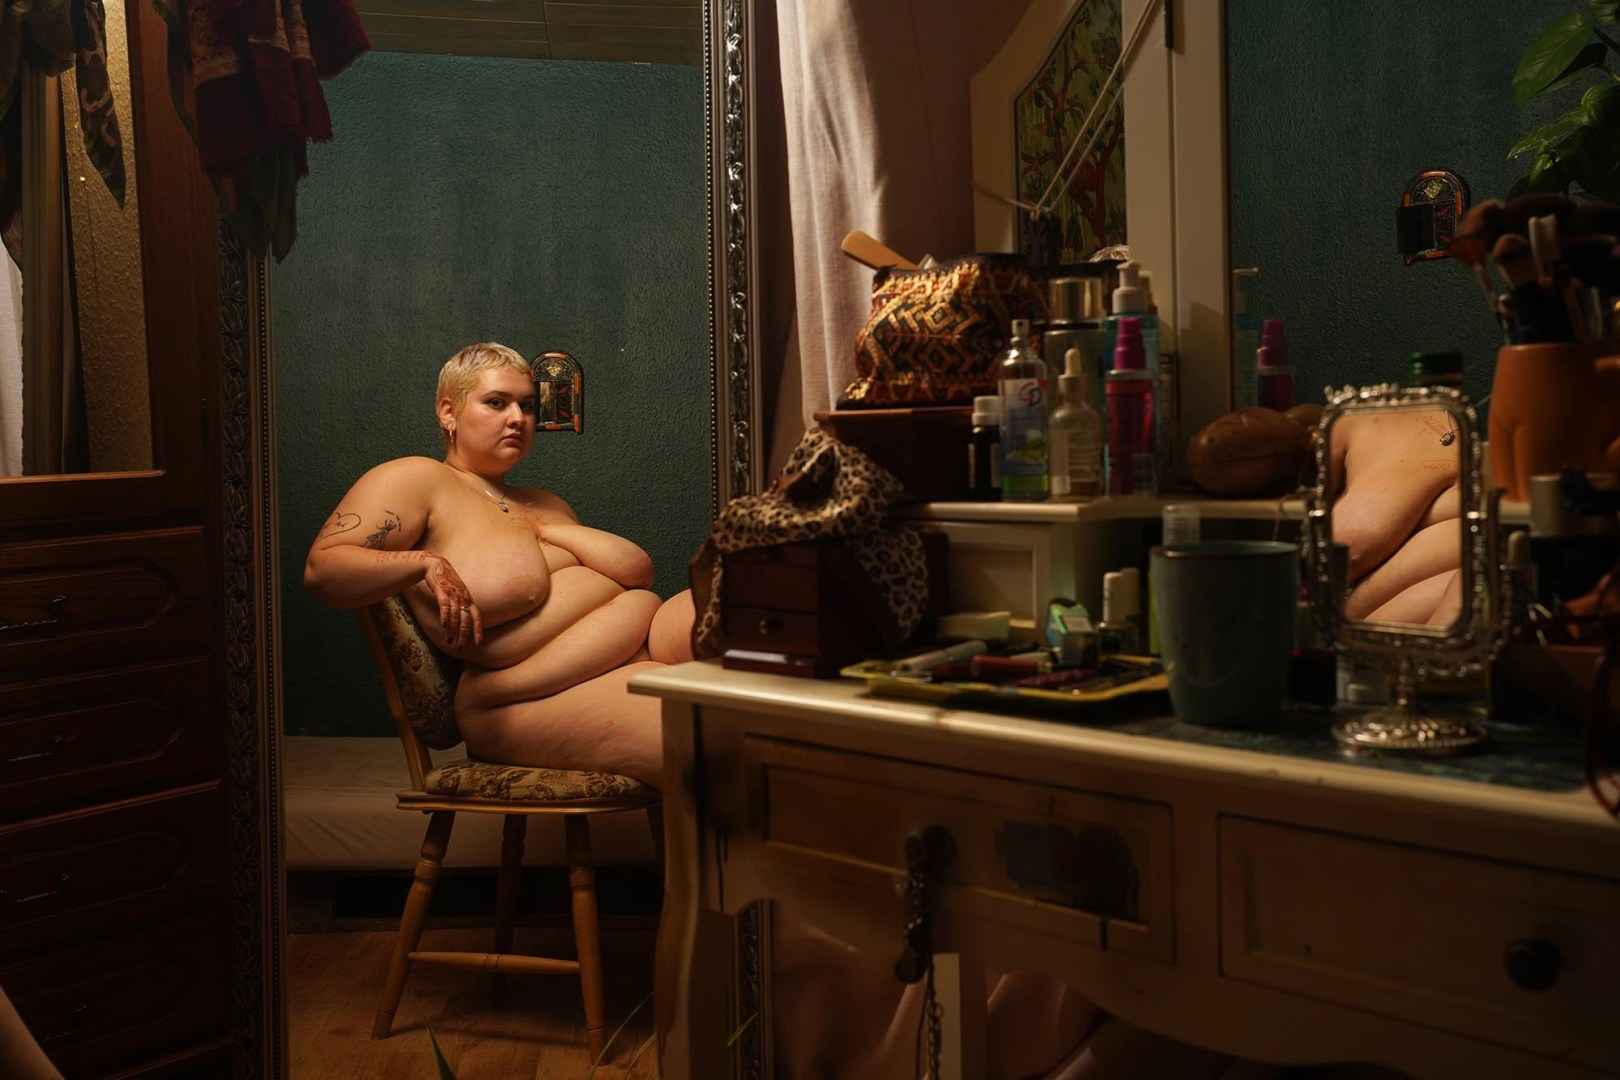 Photo Project 'Space' Documents Queer People in Their Safe Spaces